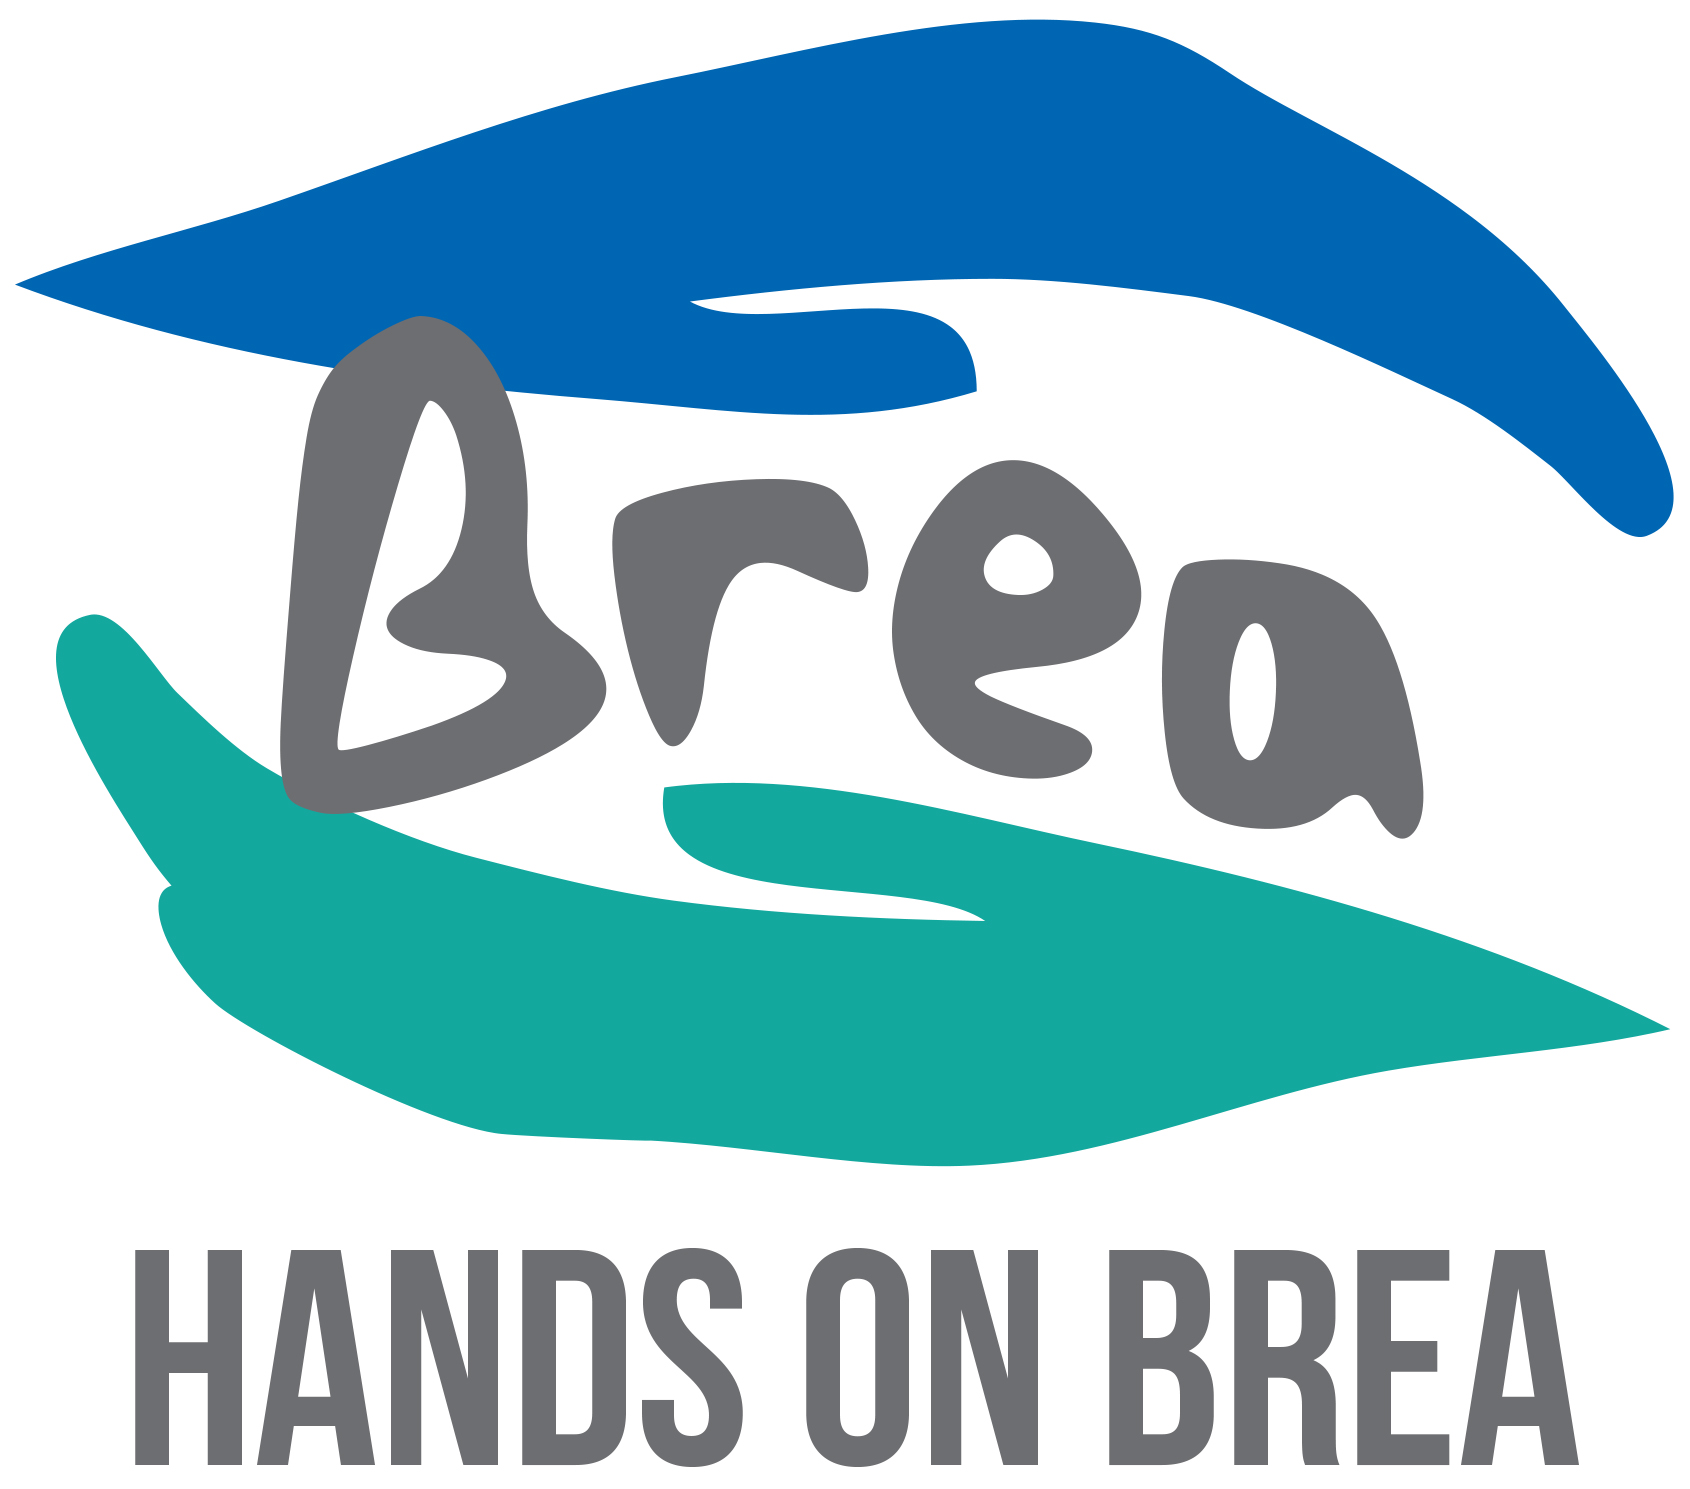 hands on brea logo.jpg